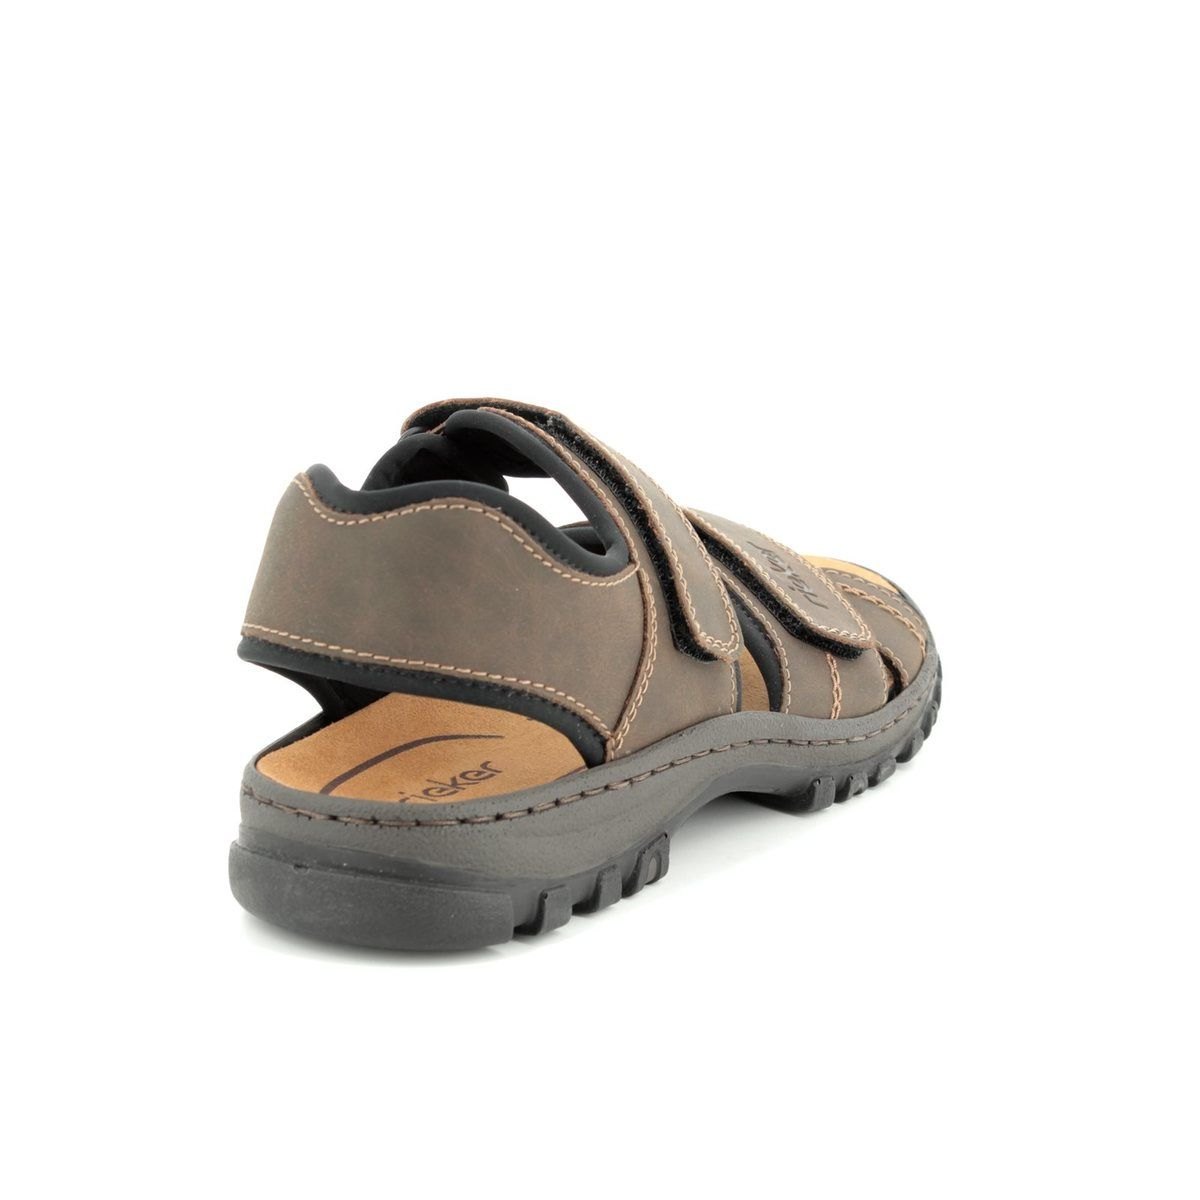 25051 27 Mens Leather Touch Fasten Sports Sandals Brown